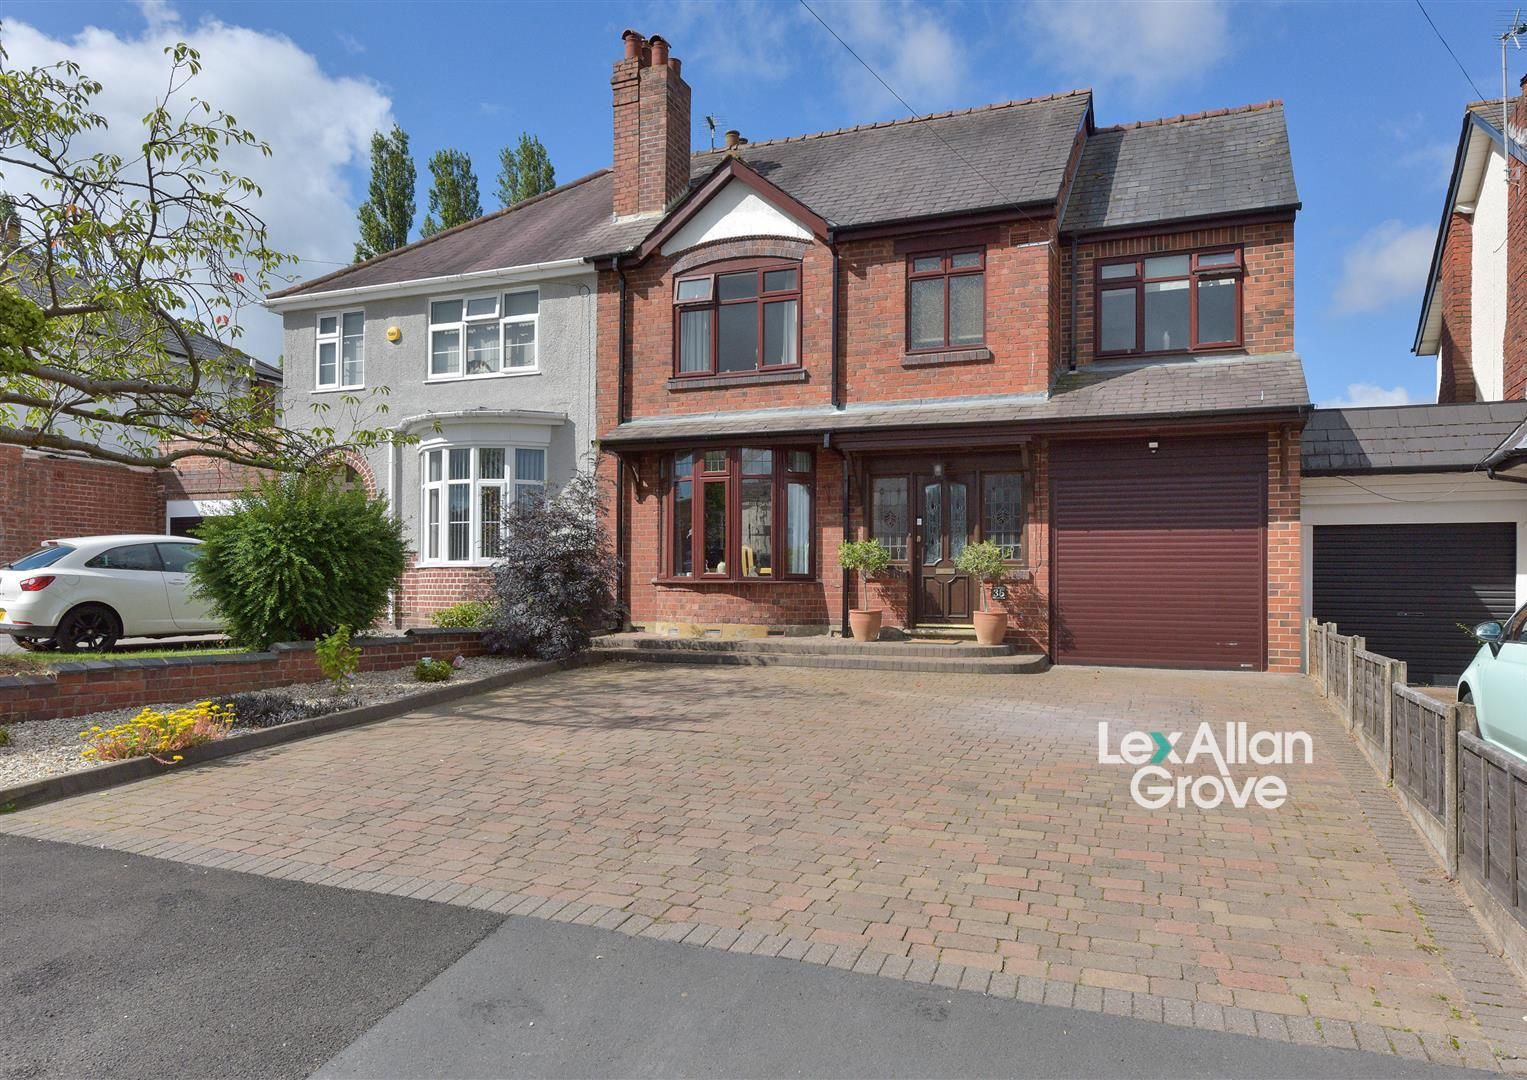 5 bed semi-detached for sale 1